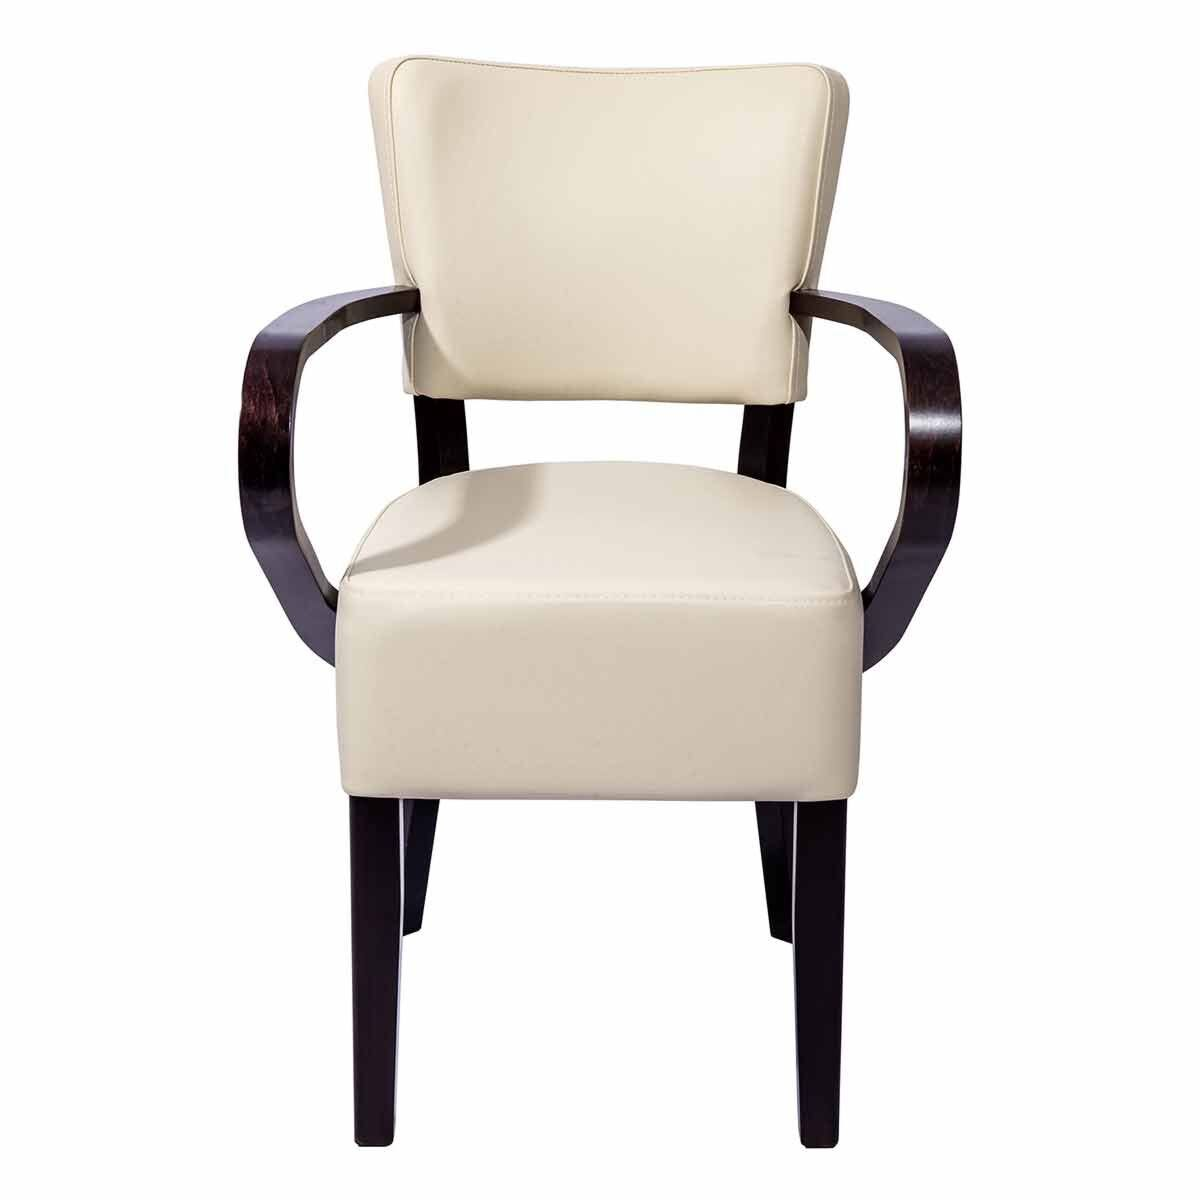 Tabilo Sena Faux Leather Dining Arm Chair Cream